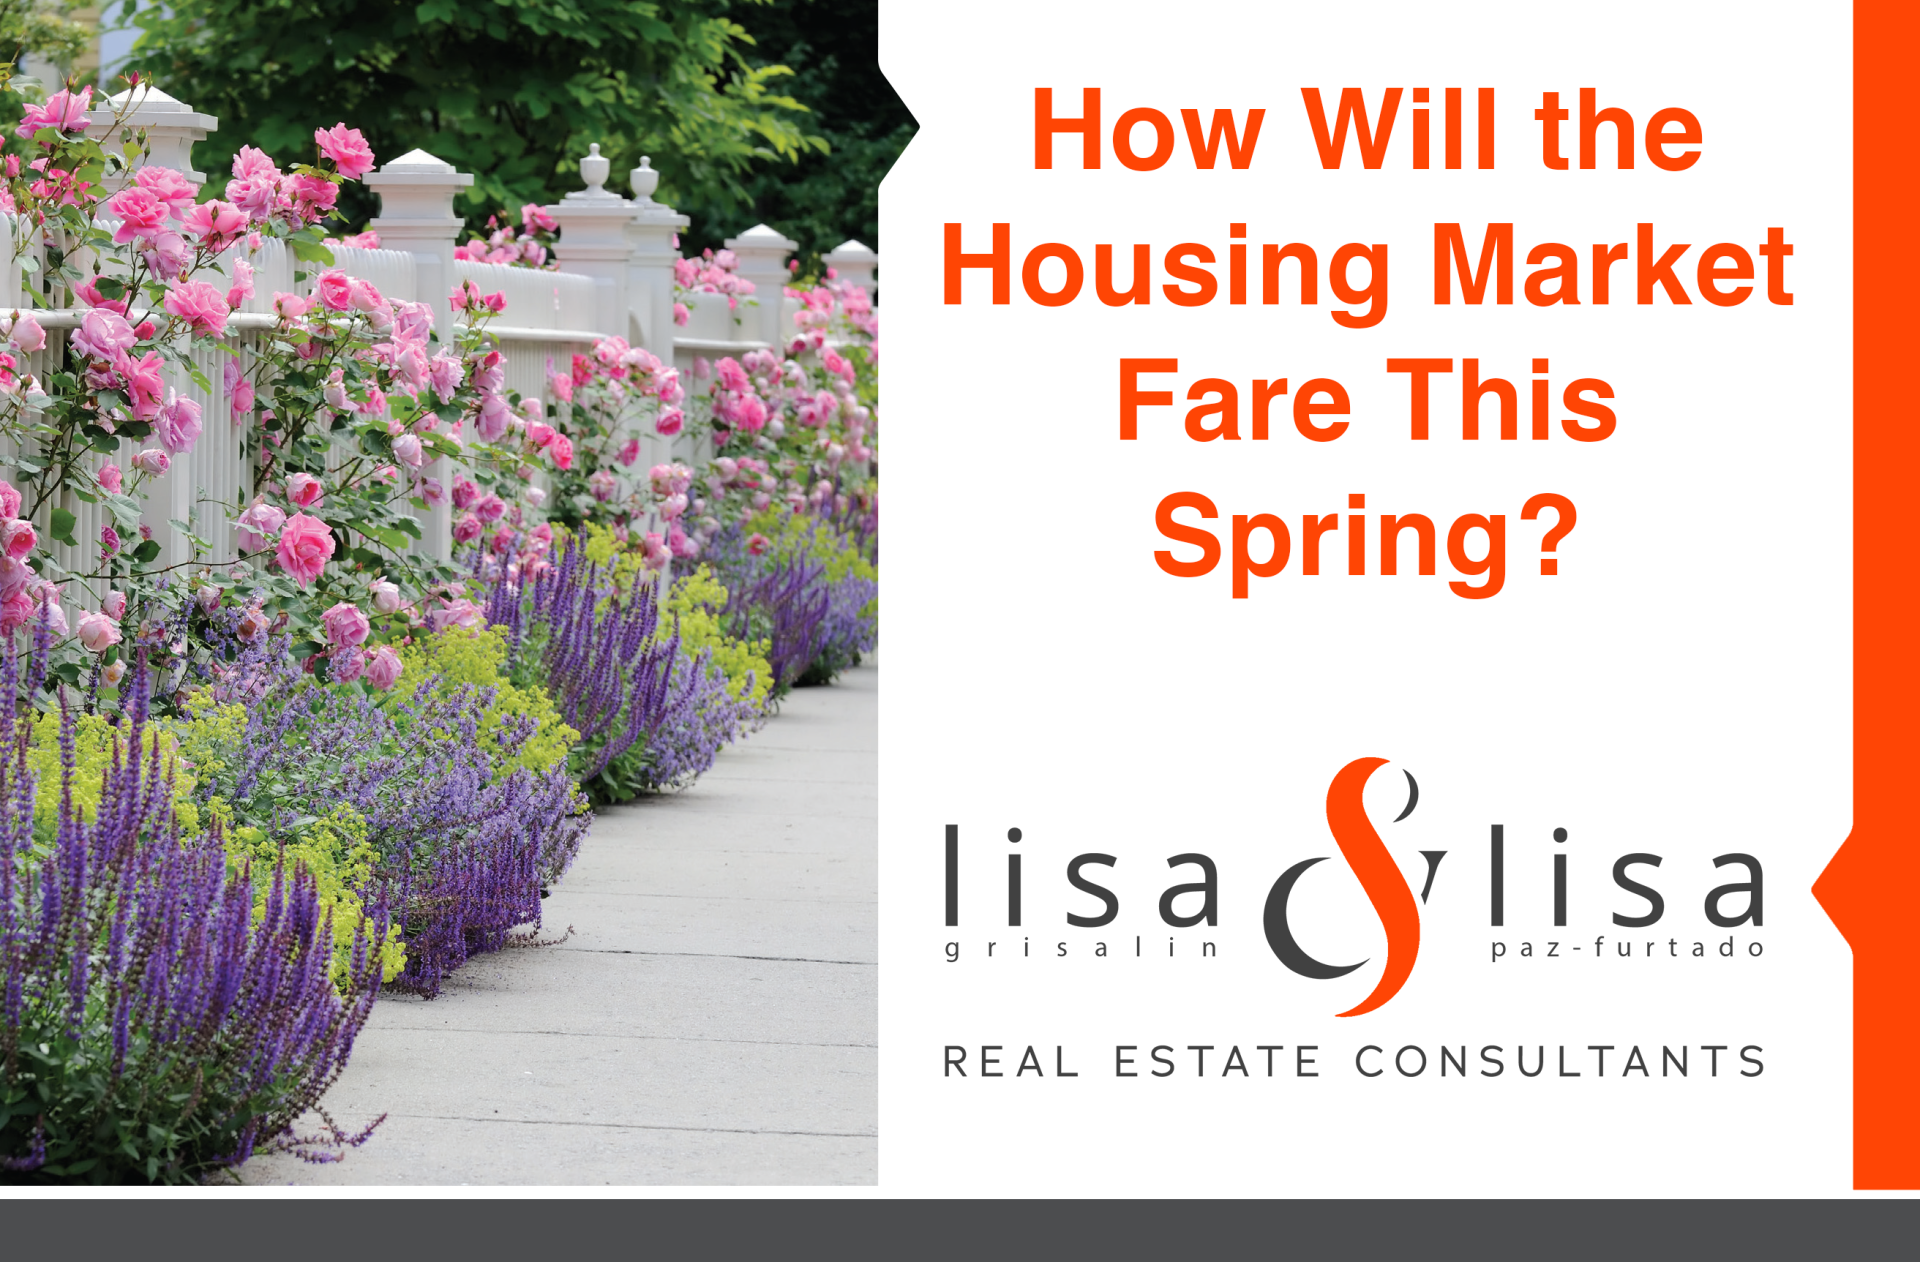 How Will the Housing Market Fare This Spring?